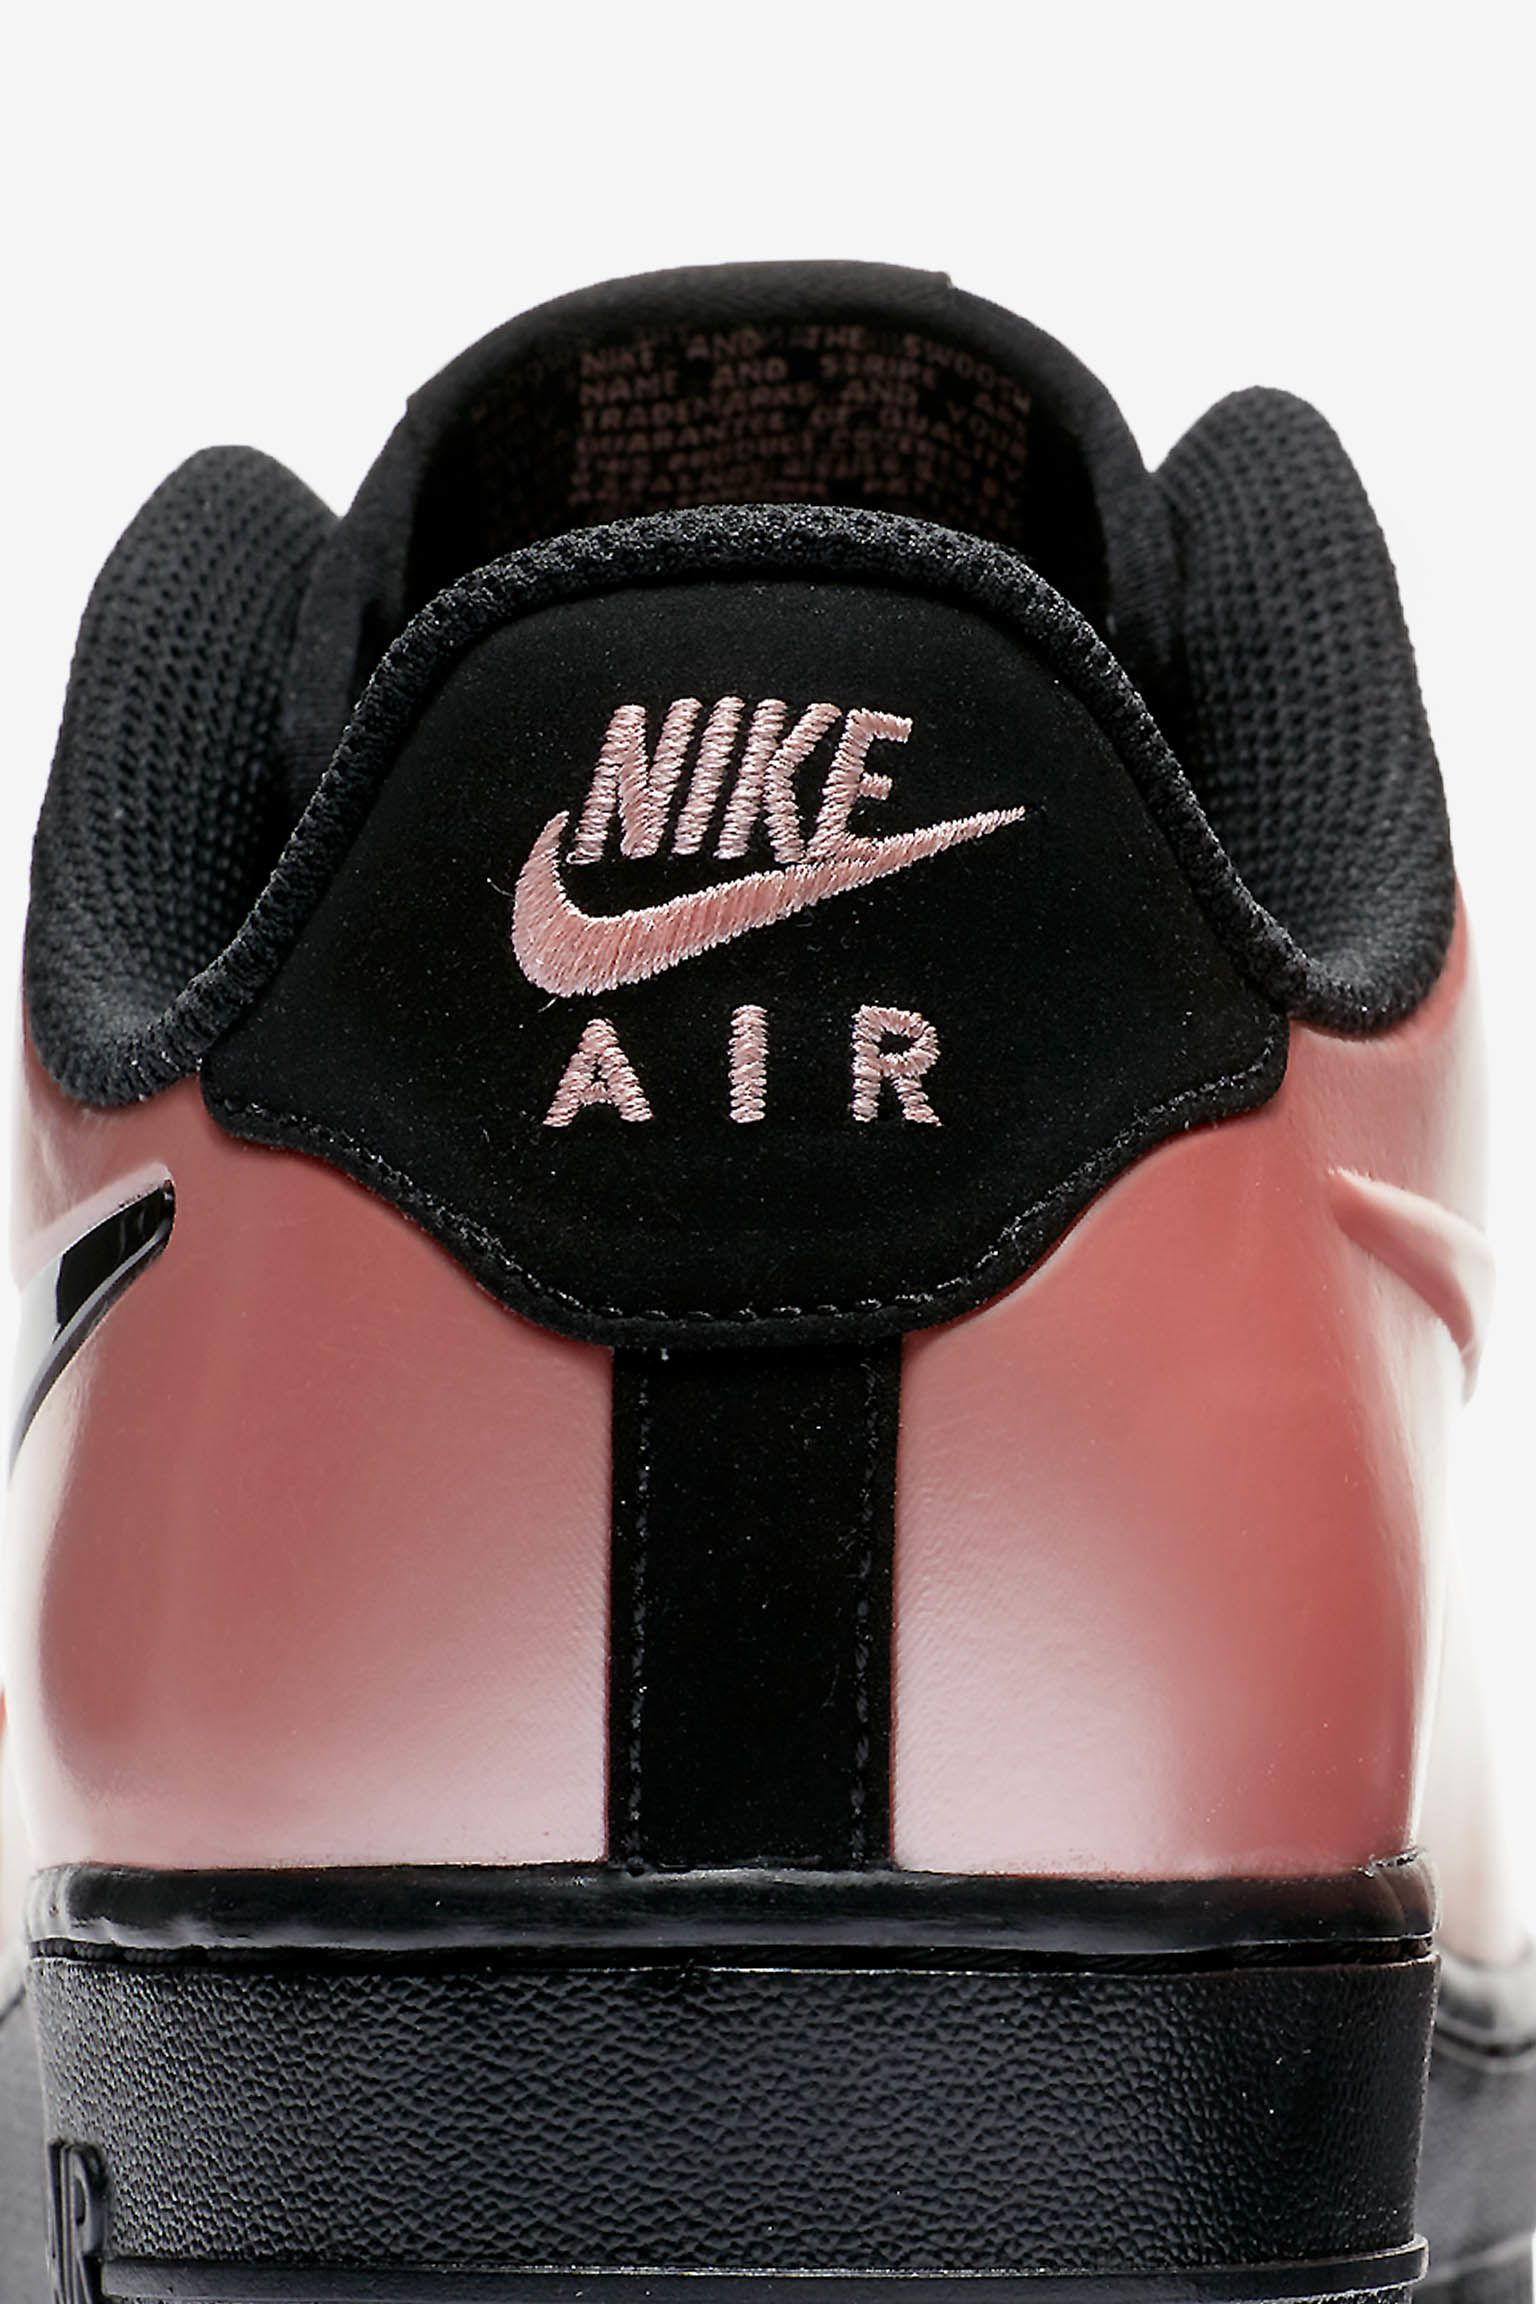 Nike Air Force 1 Foamposite Pro Cup 'Coral Stardust & Black' Release Date